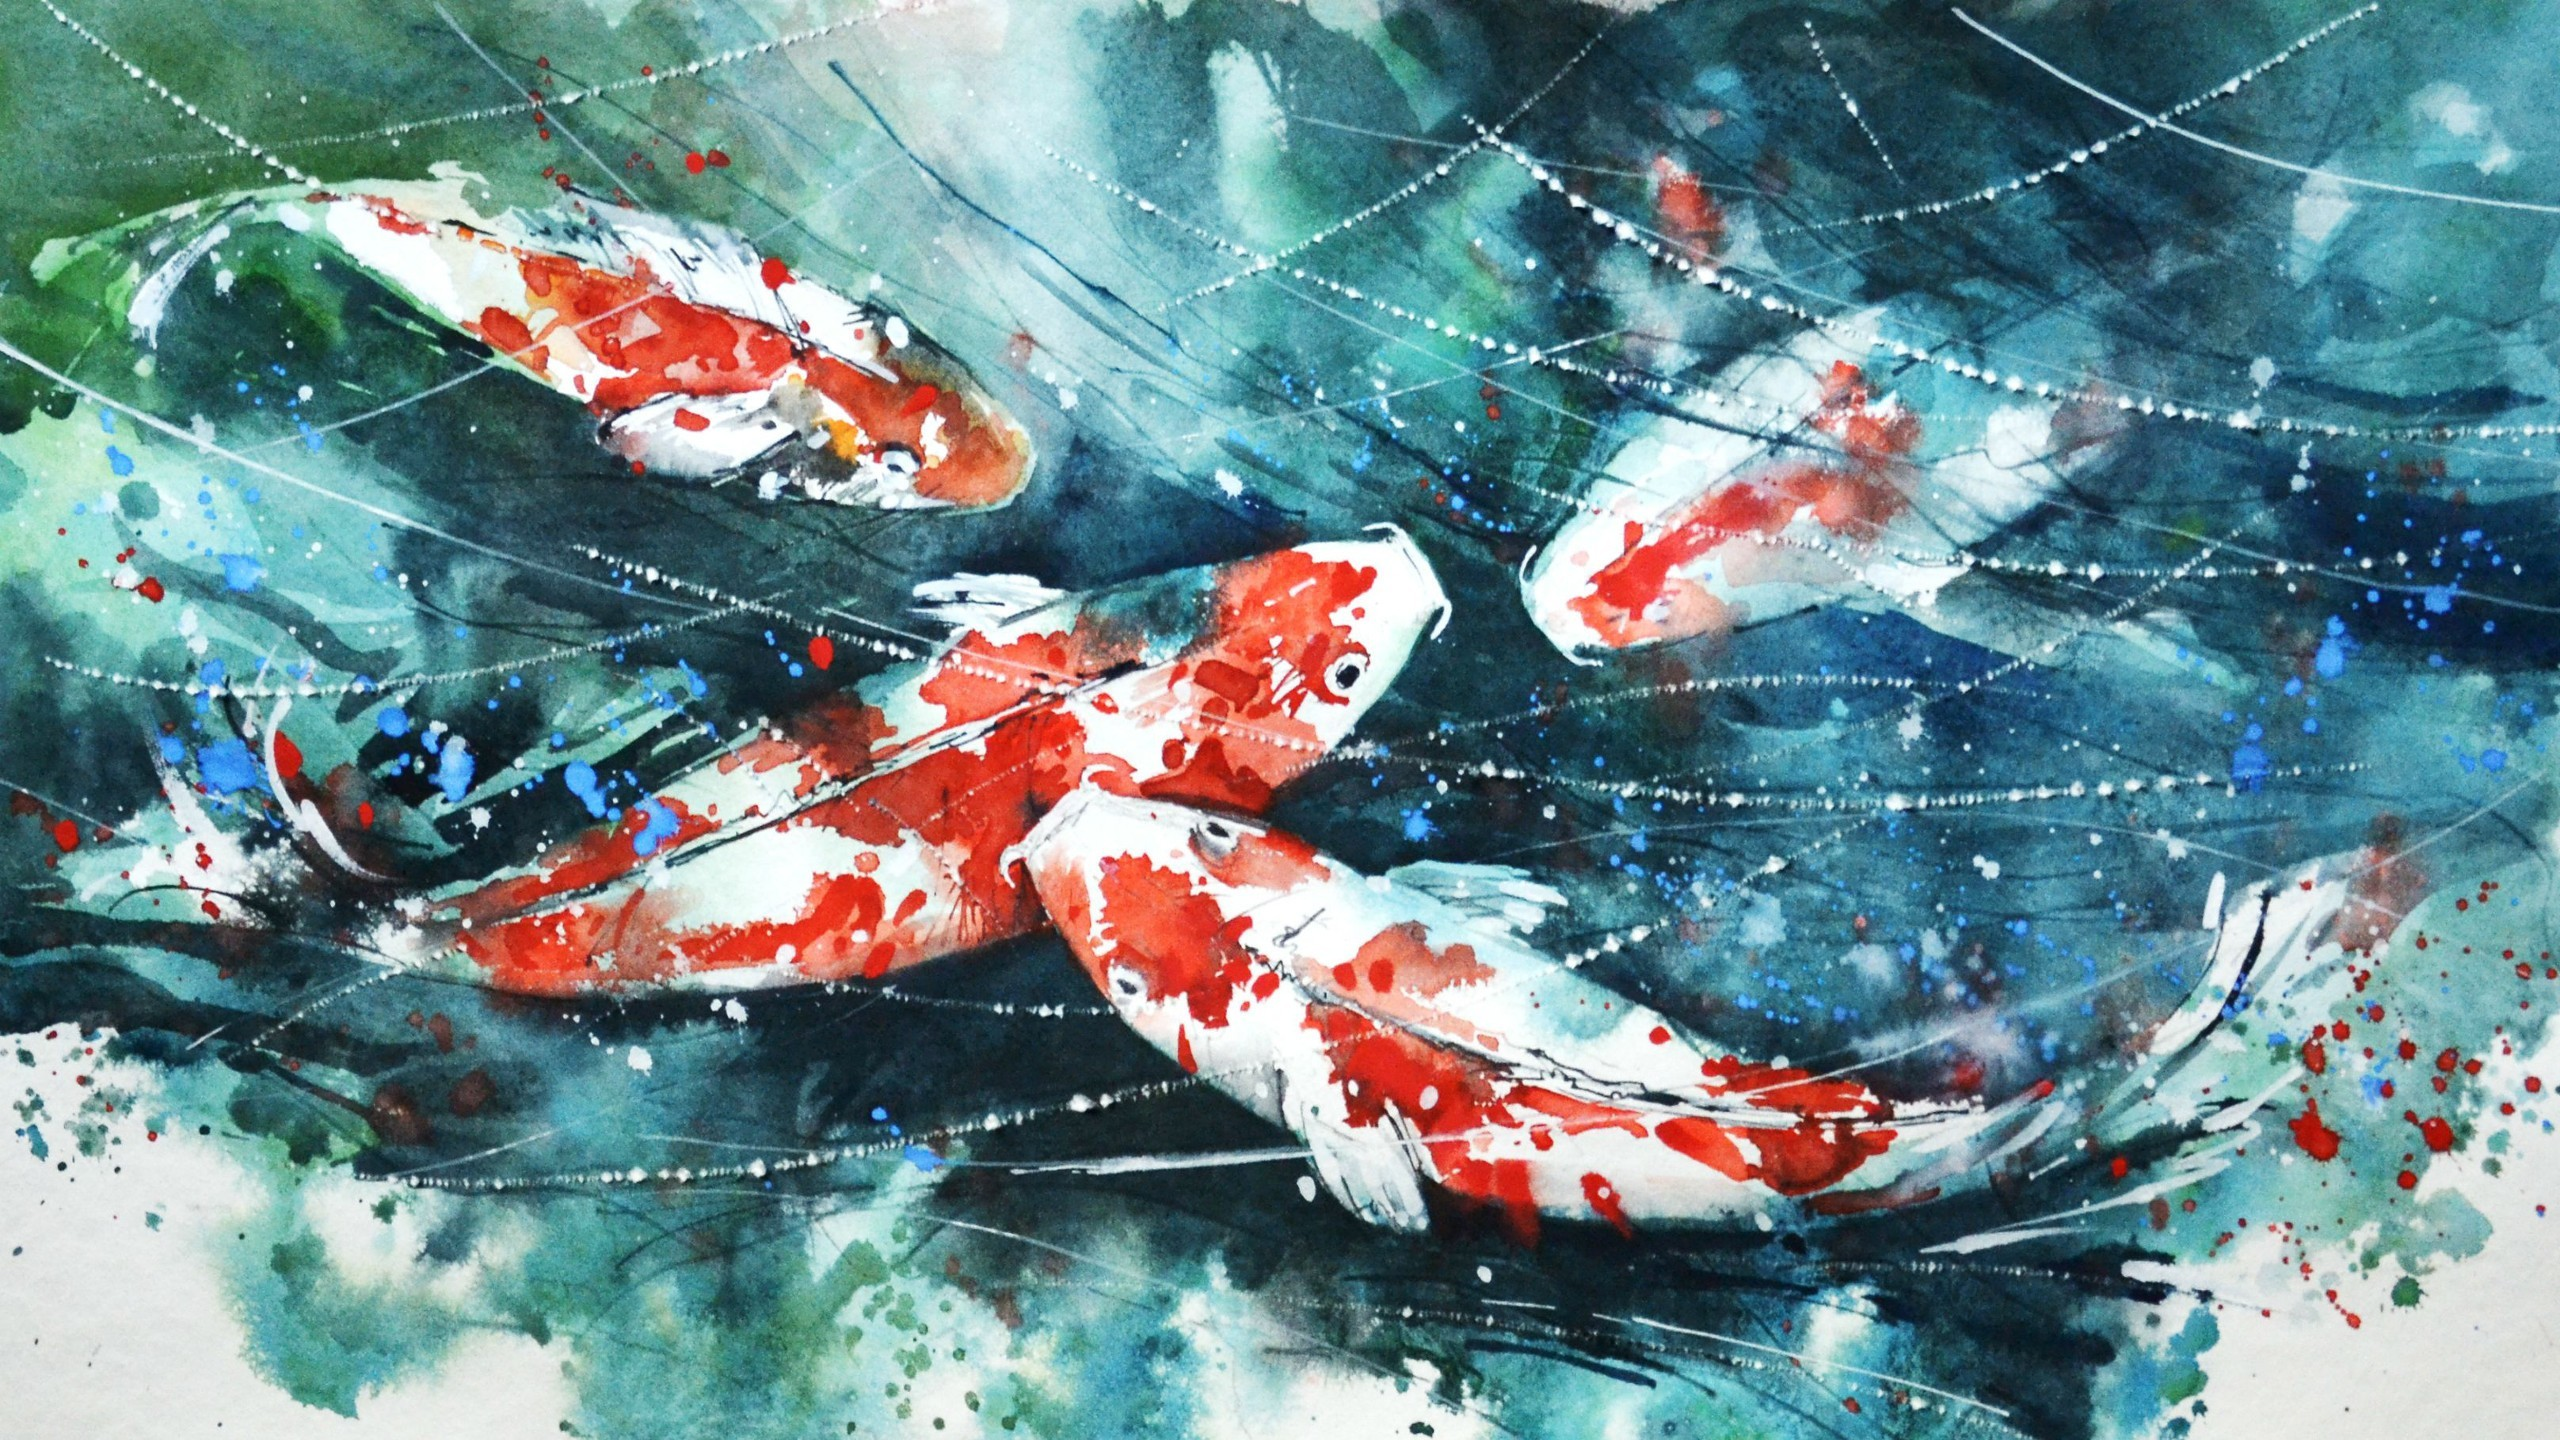 2560x1440 koi, Painting, Watercolor, Fish, Artwork, Paint splatter Wallpapers HD /  Desktop and Mobile Backgrounds